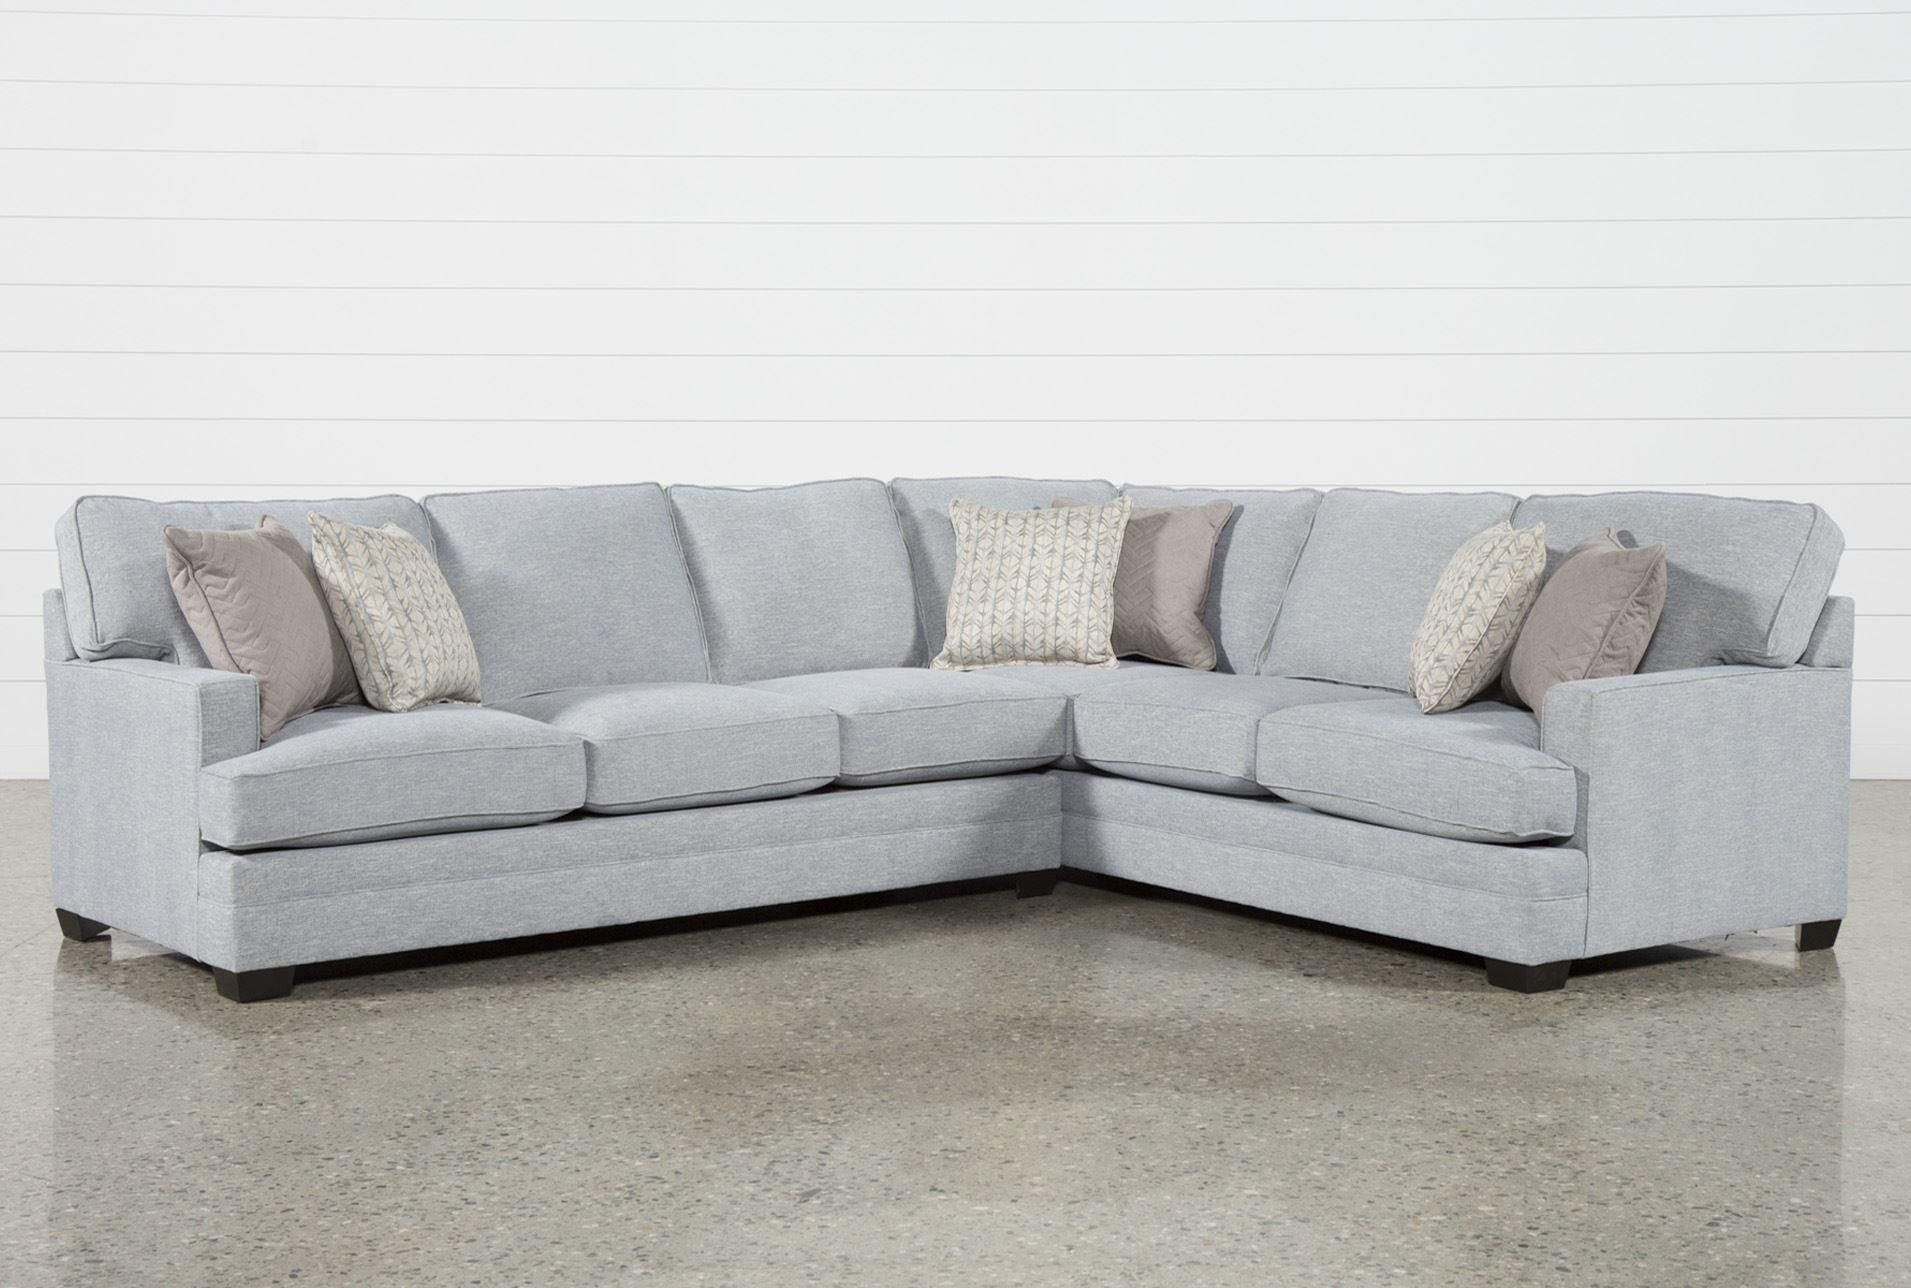 Josephine 2 Piece Sectional W/laf Sofa | For The Home | Pinterest Pertaining To Mesa Foam 2 Piece Sectionals (Image 9 of 25)